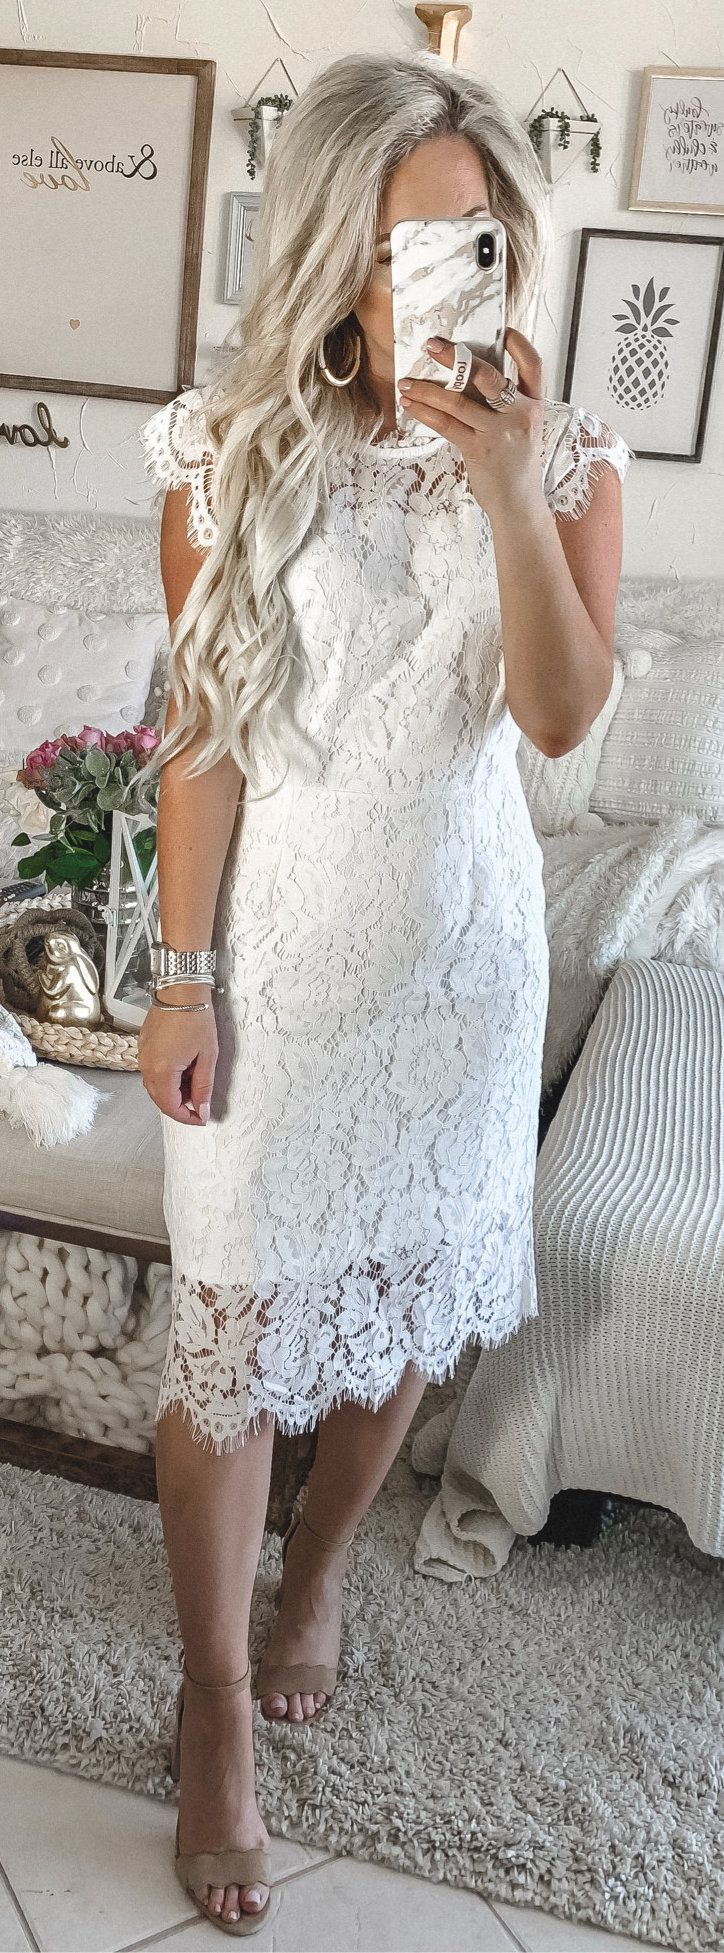 white lace sleeveless dress #spring #outfits